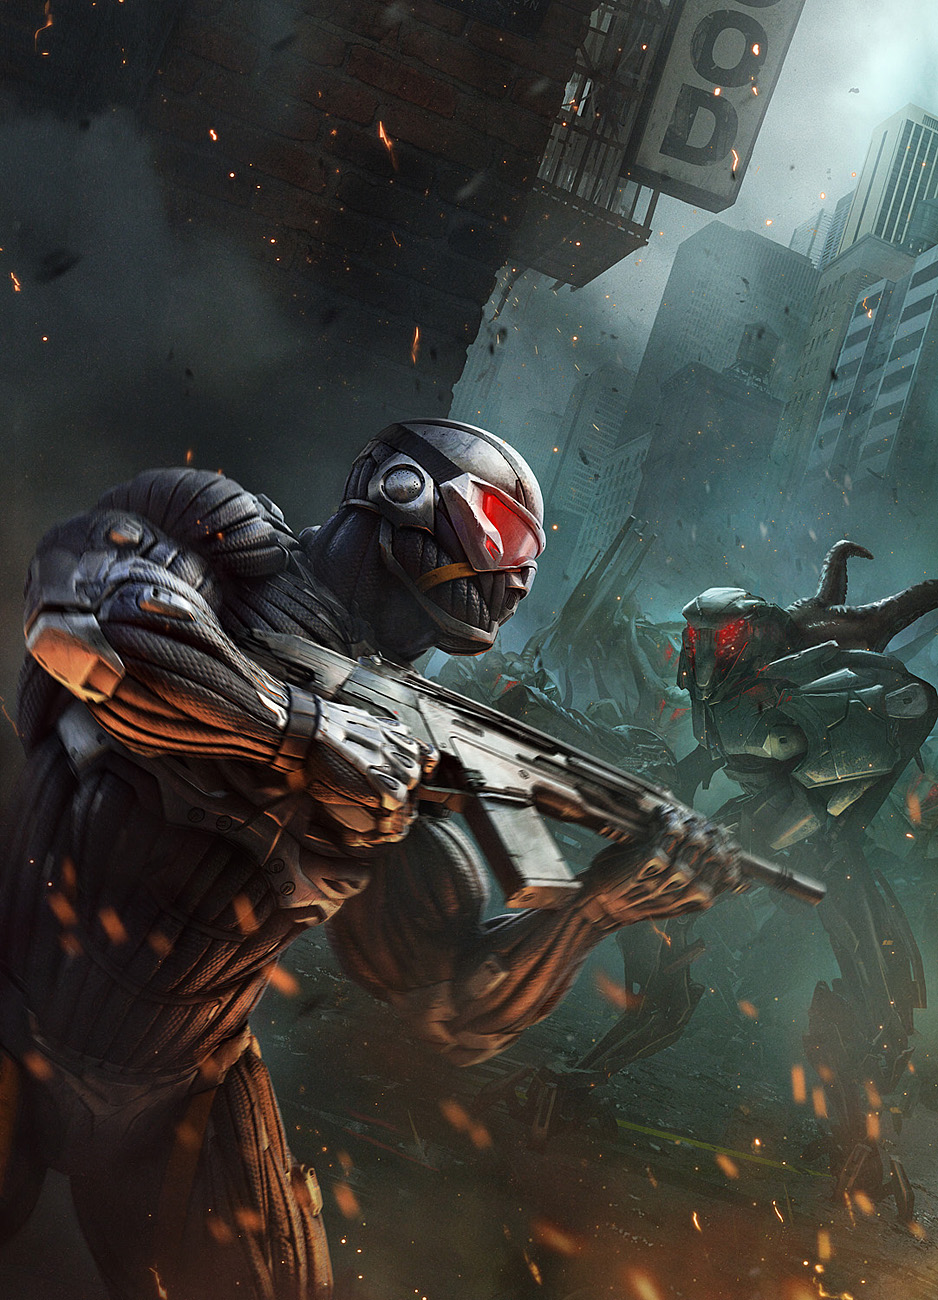 Crysis 2s Concept Art Is A Love Letter To New York City